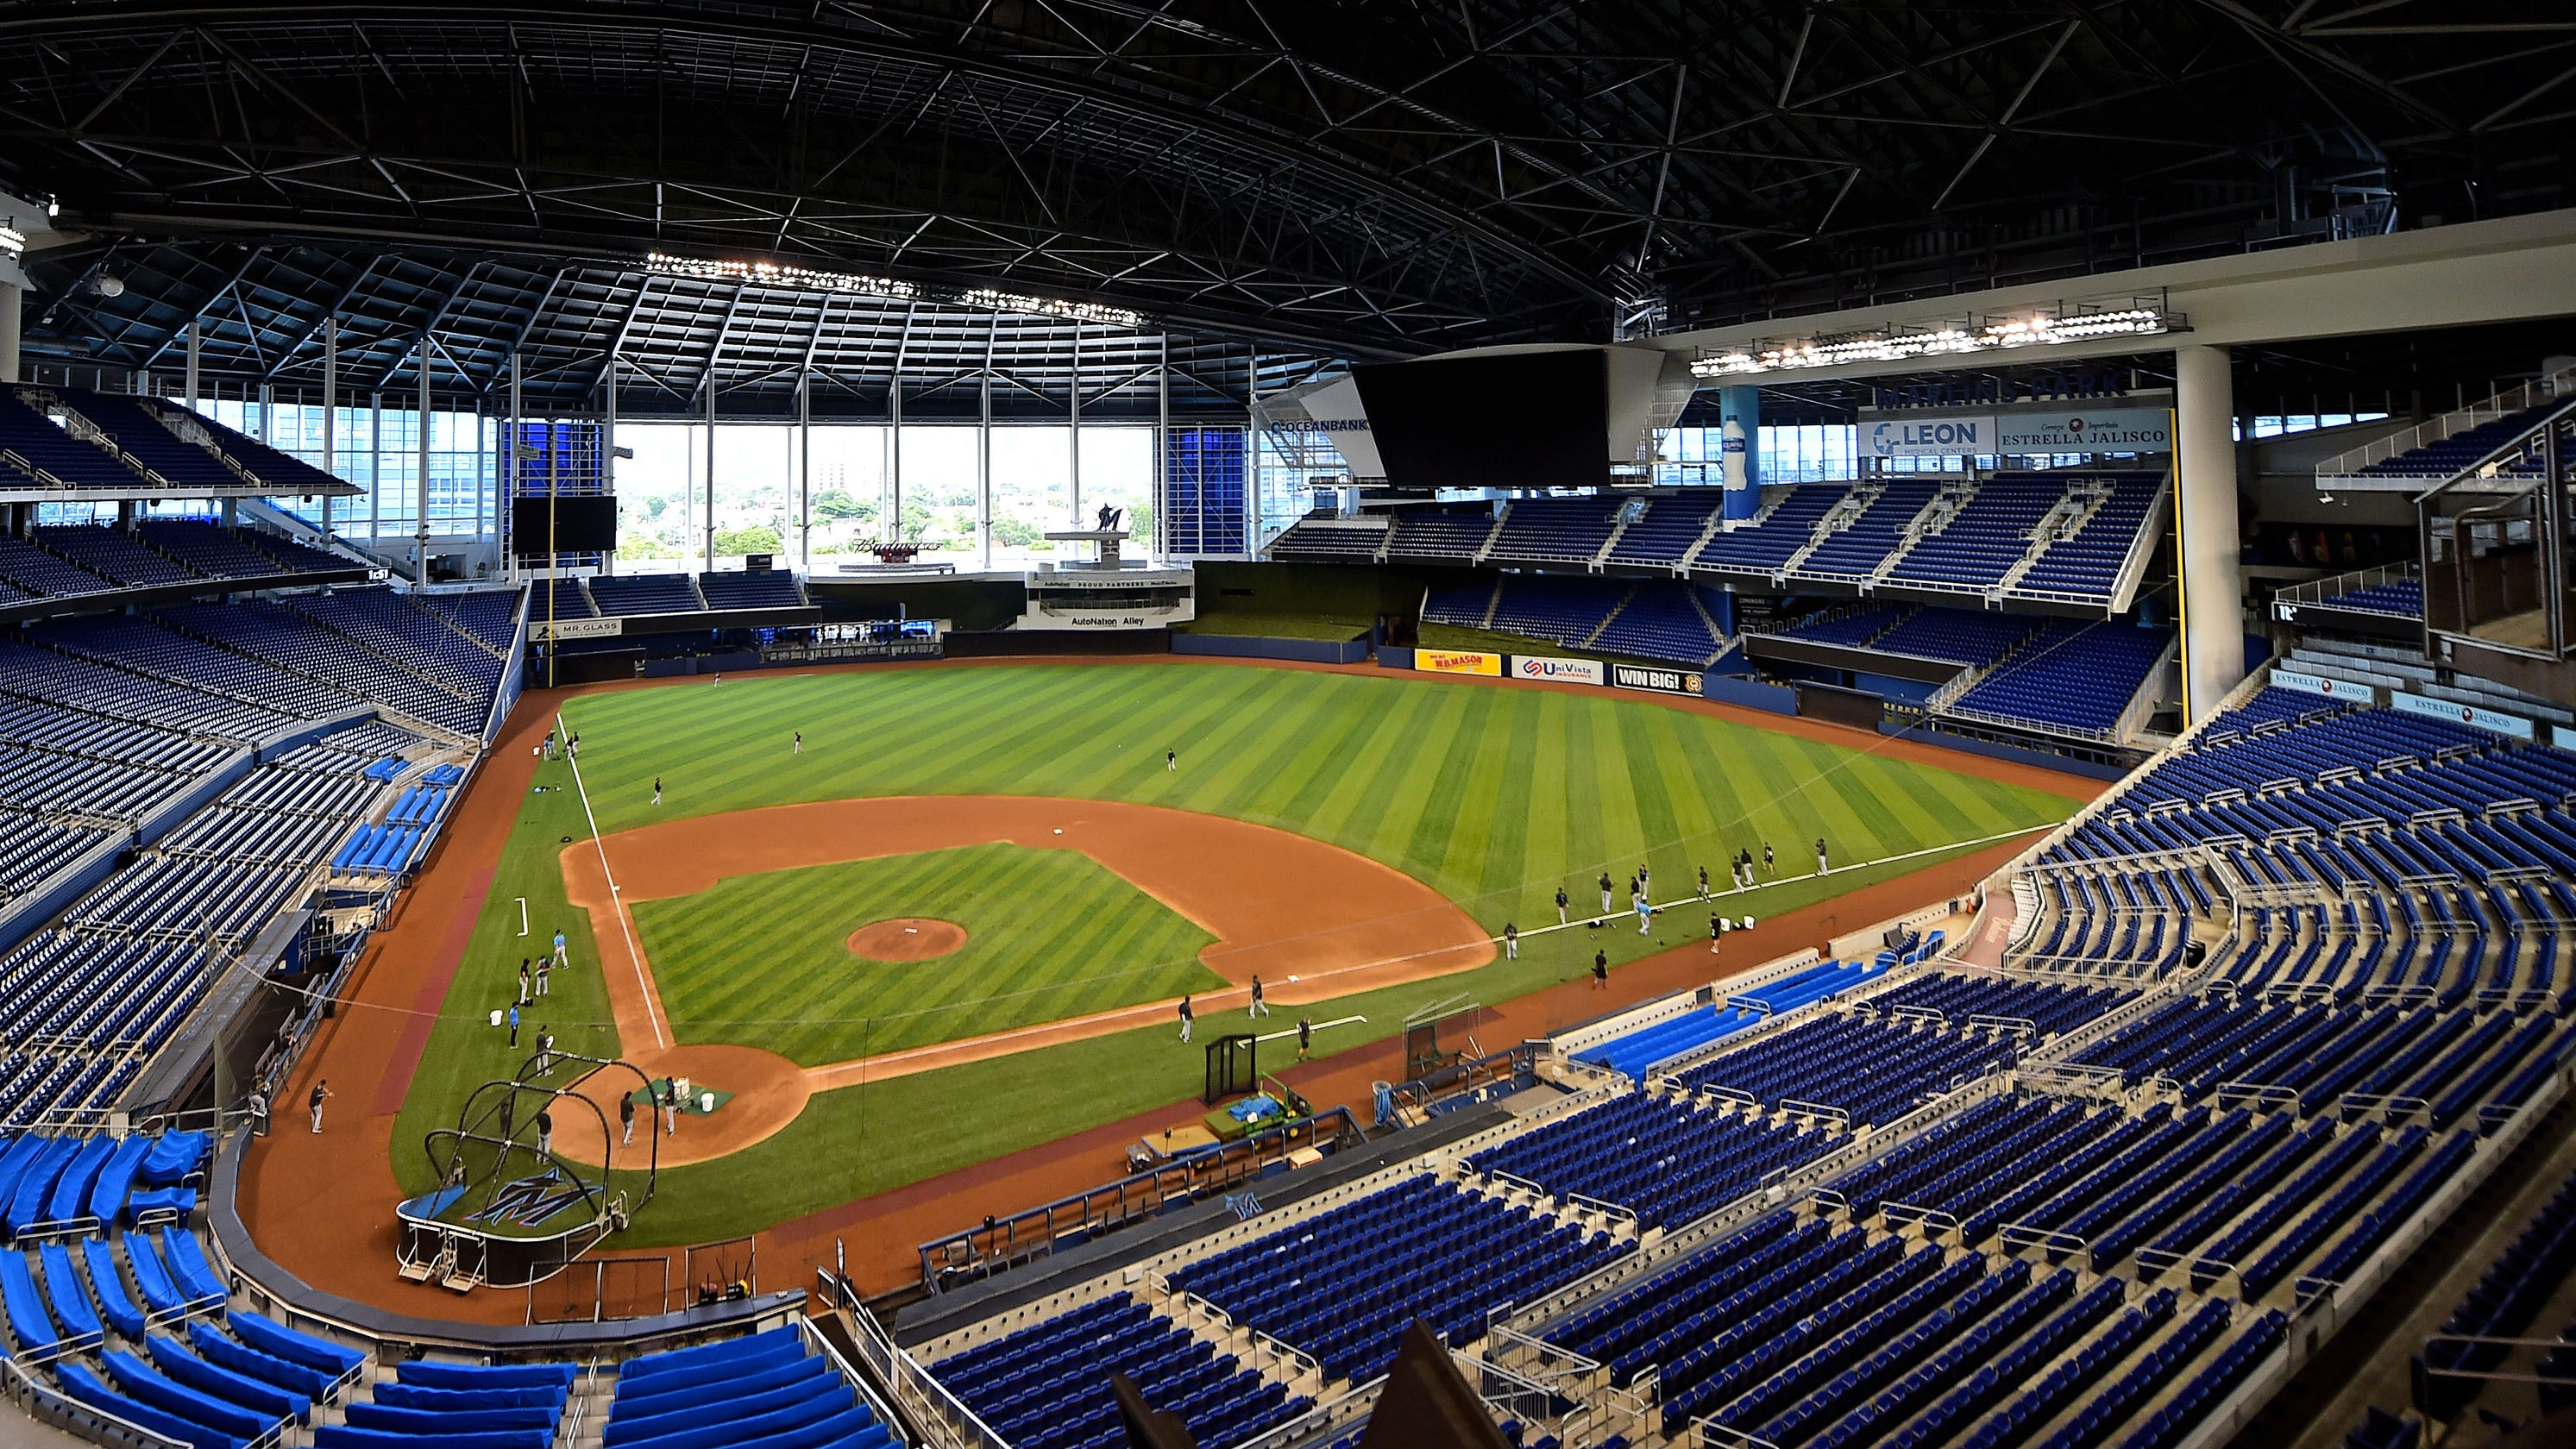 Nationals players vote against traveling to Miami with Marlins ravaged by COVID-19, Florida cases surging